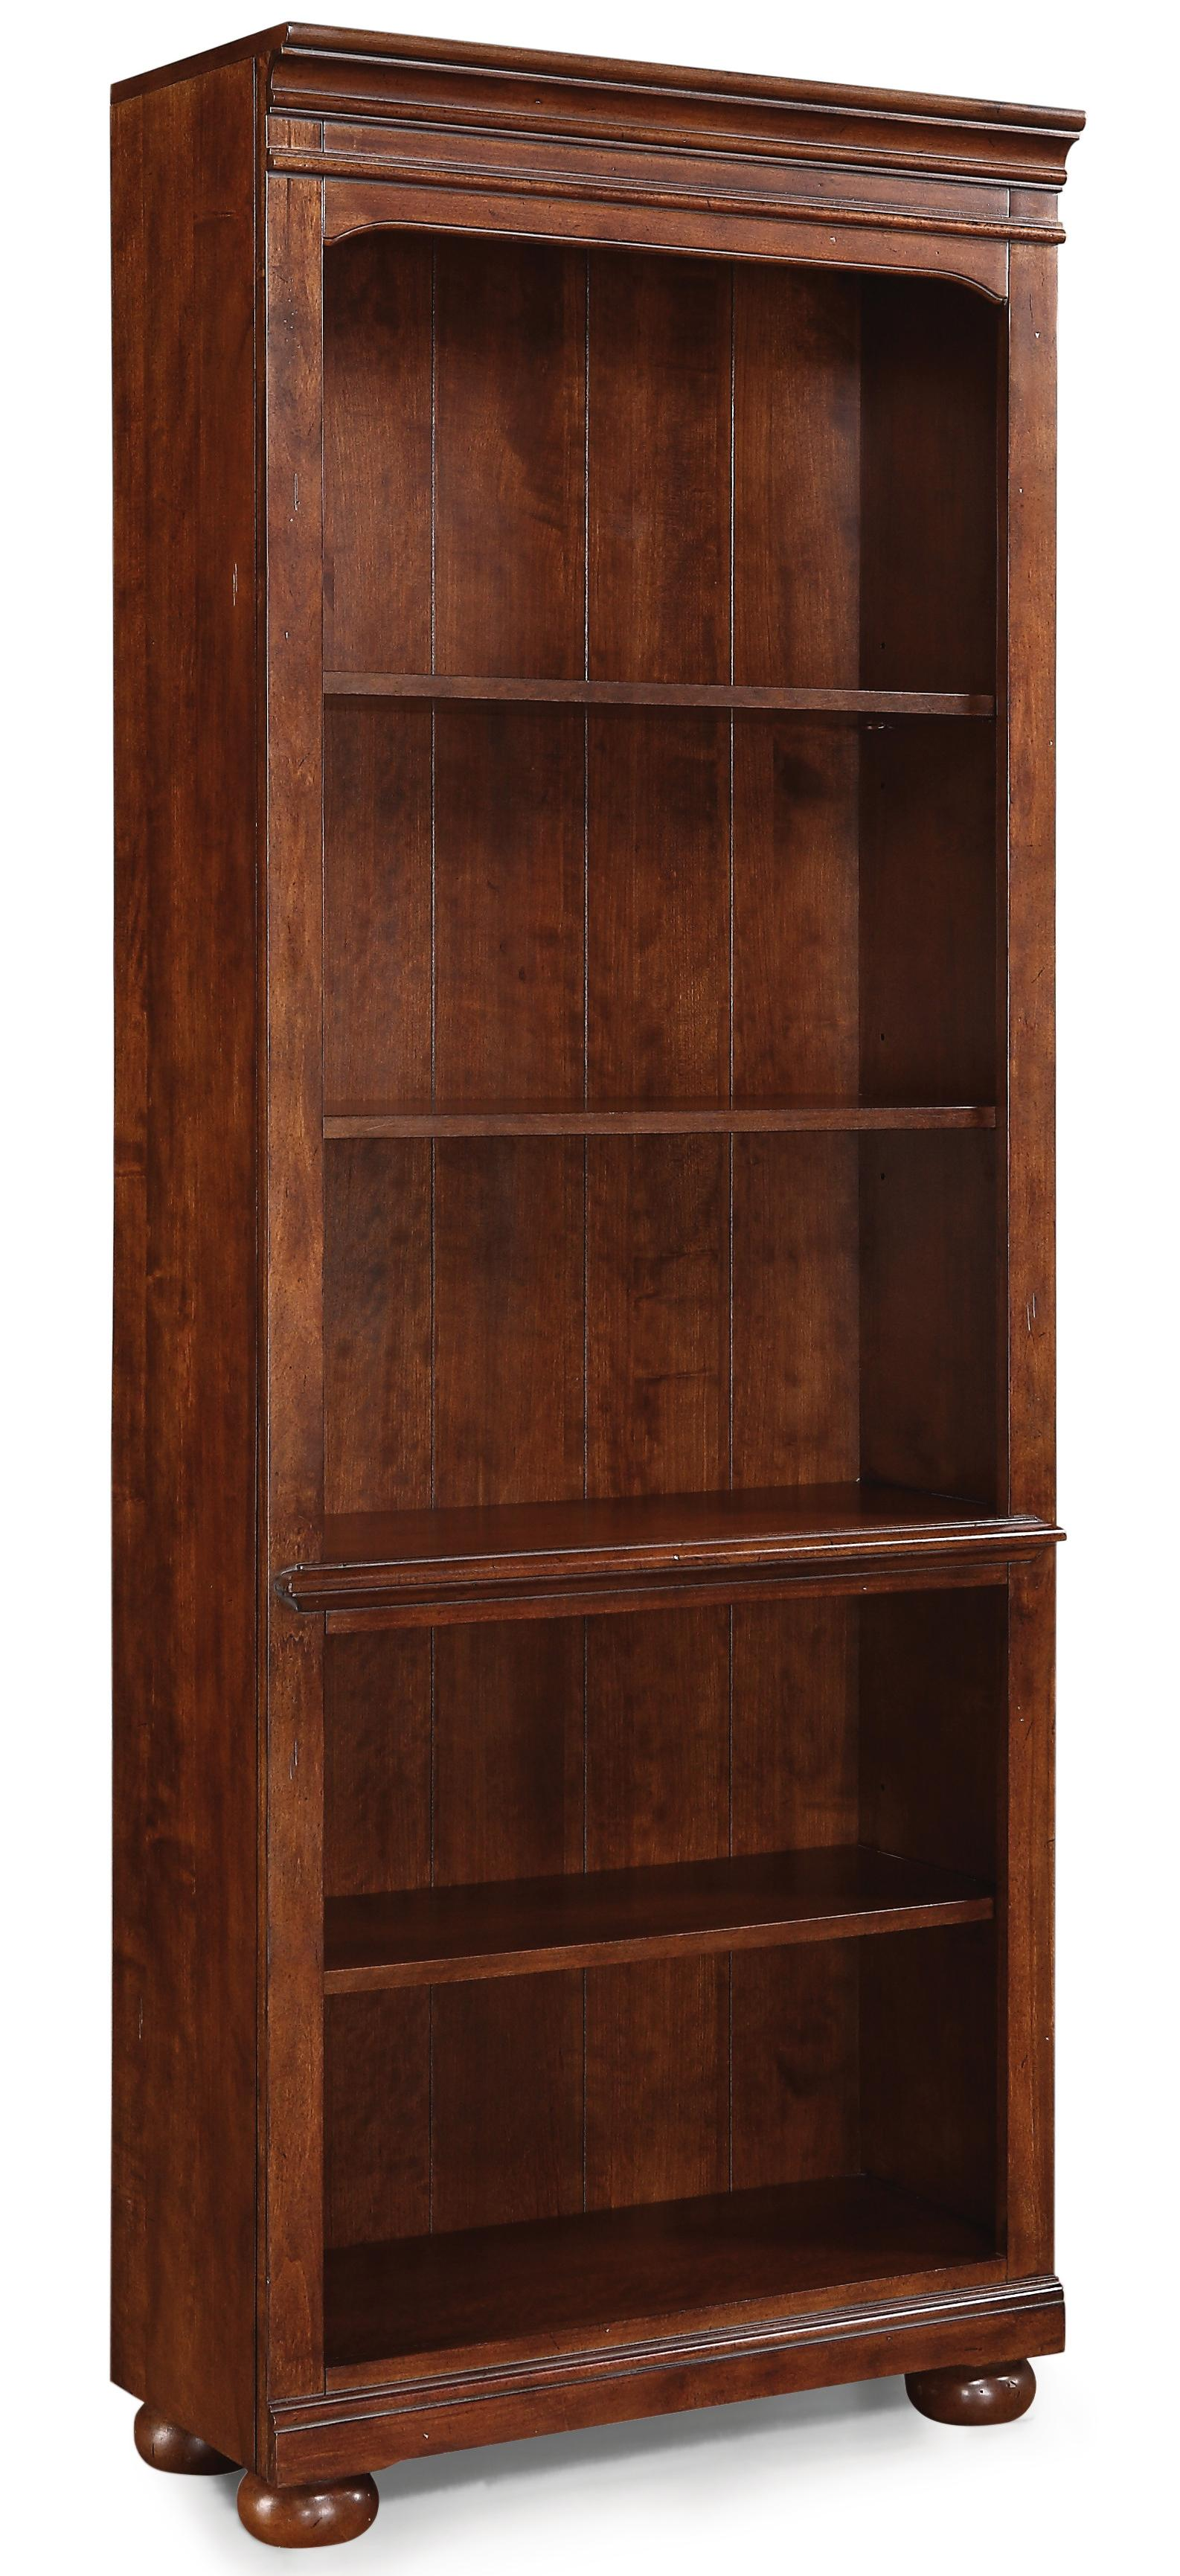 Flexsteel Wynwood Collection American Heritage Bookcase - Item Number: W1209-701